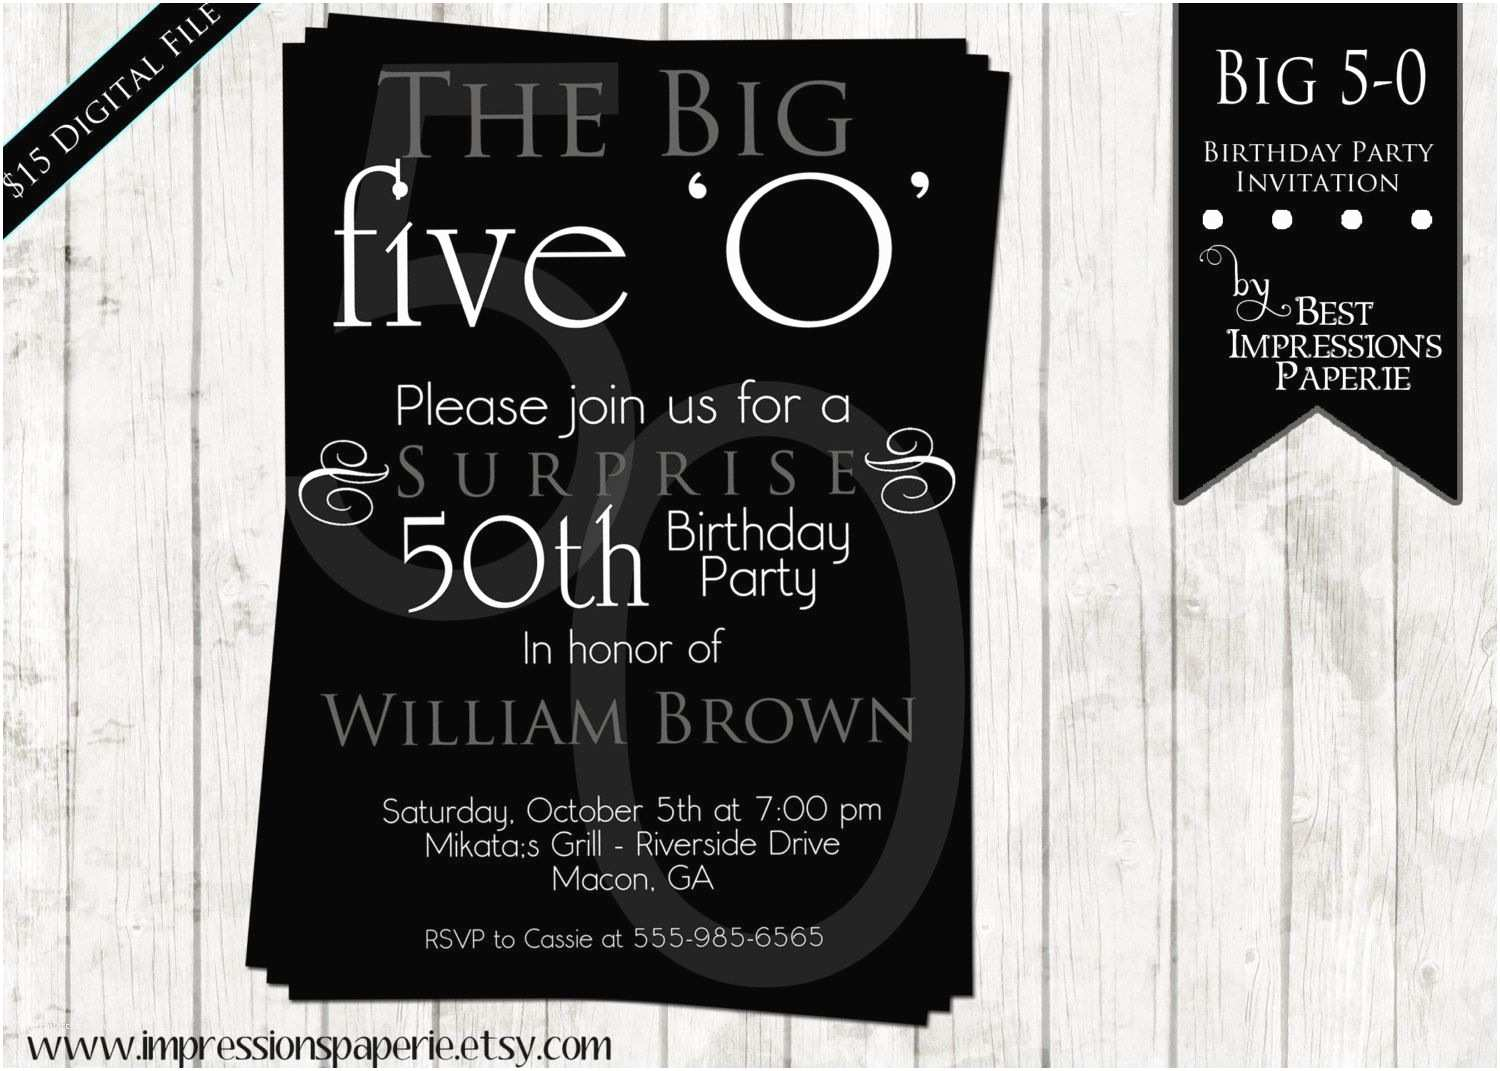 Birthday Party Invitation Ideas For 50th Invitations